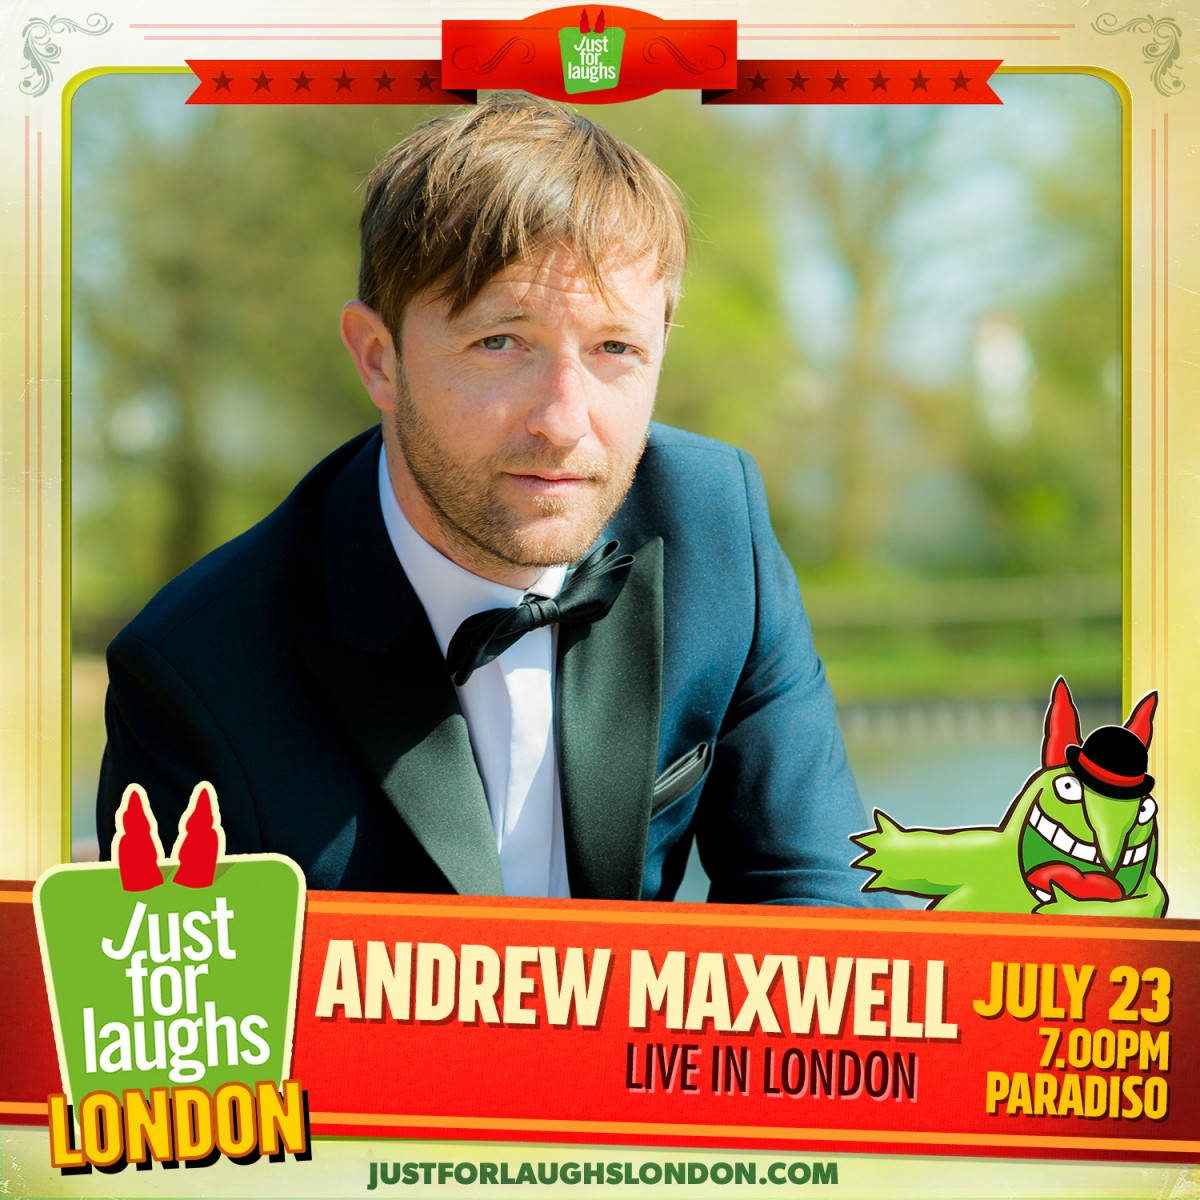 Andrew Maxwell Live in London